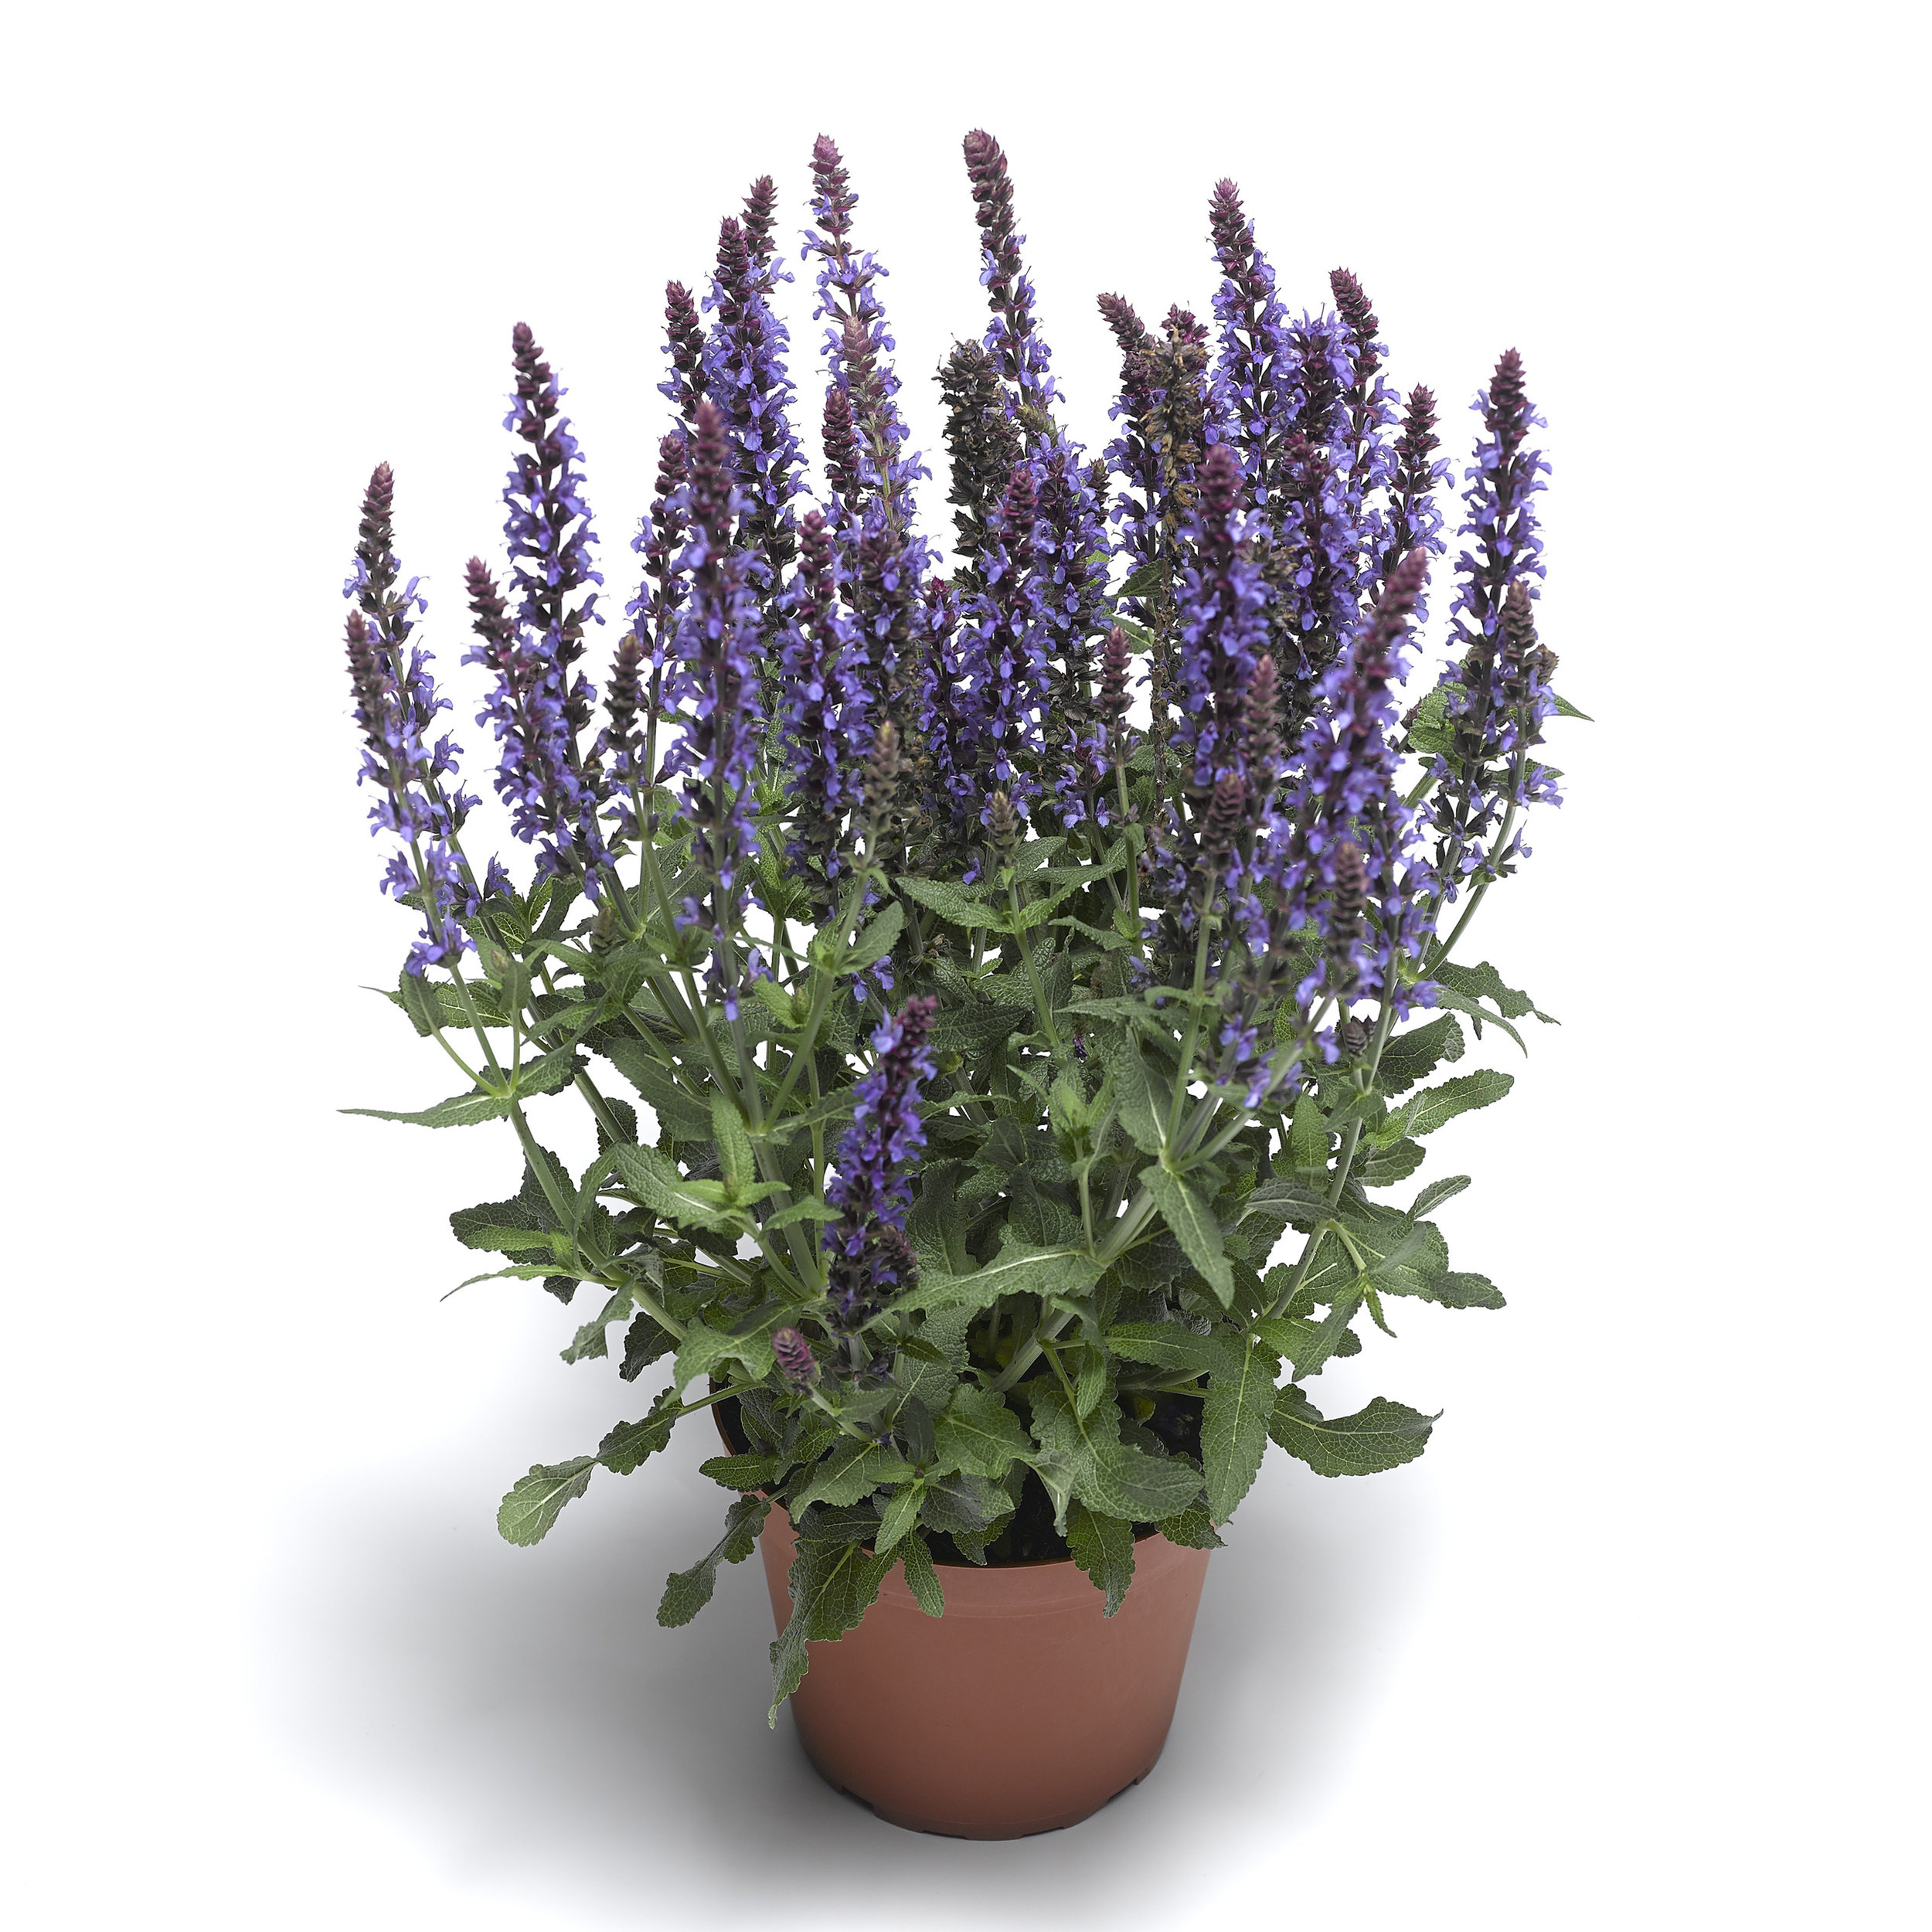 HR_Vegetative_Salvia_Bordeau™_Bordeau™_Compact_Sky_Blue_70054528_1.jpg